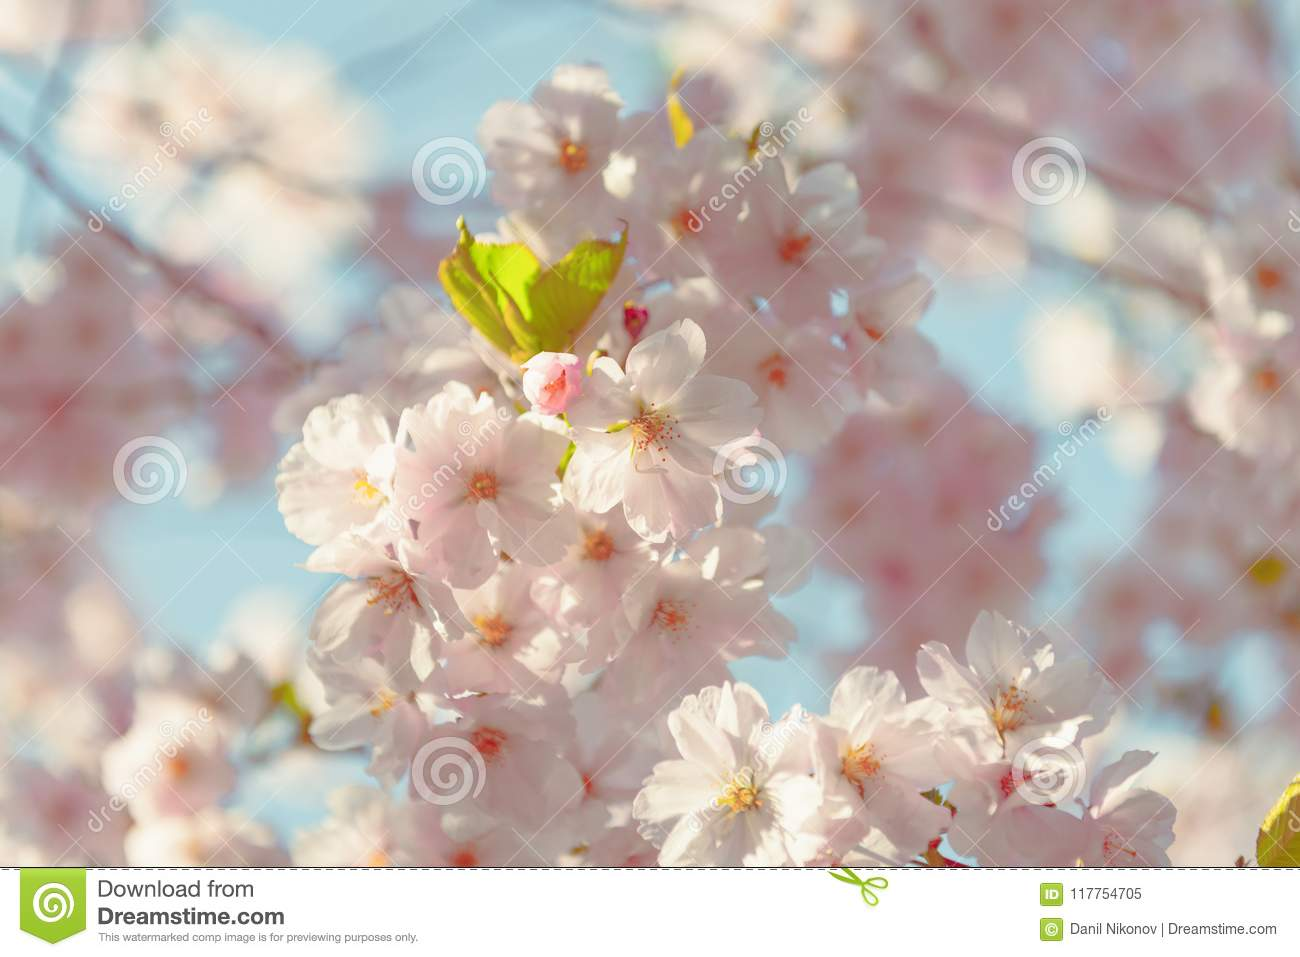 661709f43a3 Beautiful colorful fresh spring flowers with clear blue sky. Spring pink  blossoms with blur sky background. Spring background. Greeting card for  Mother`s ...